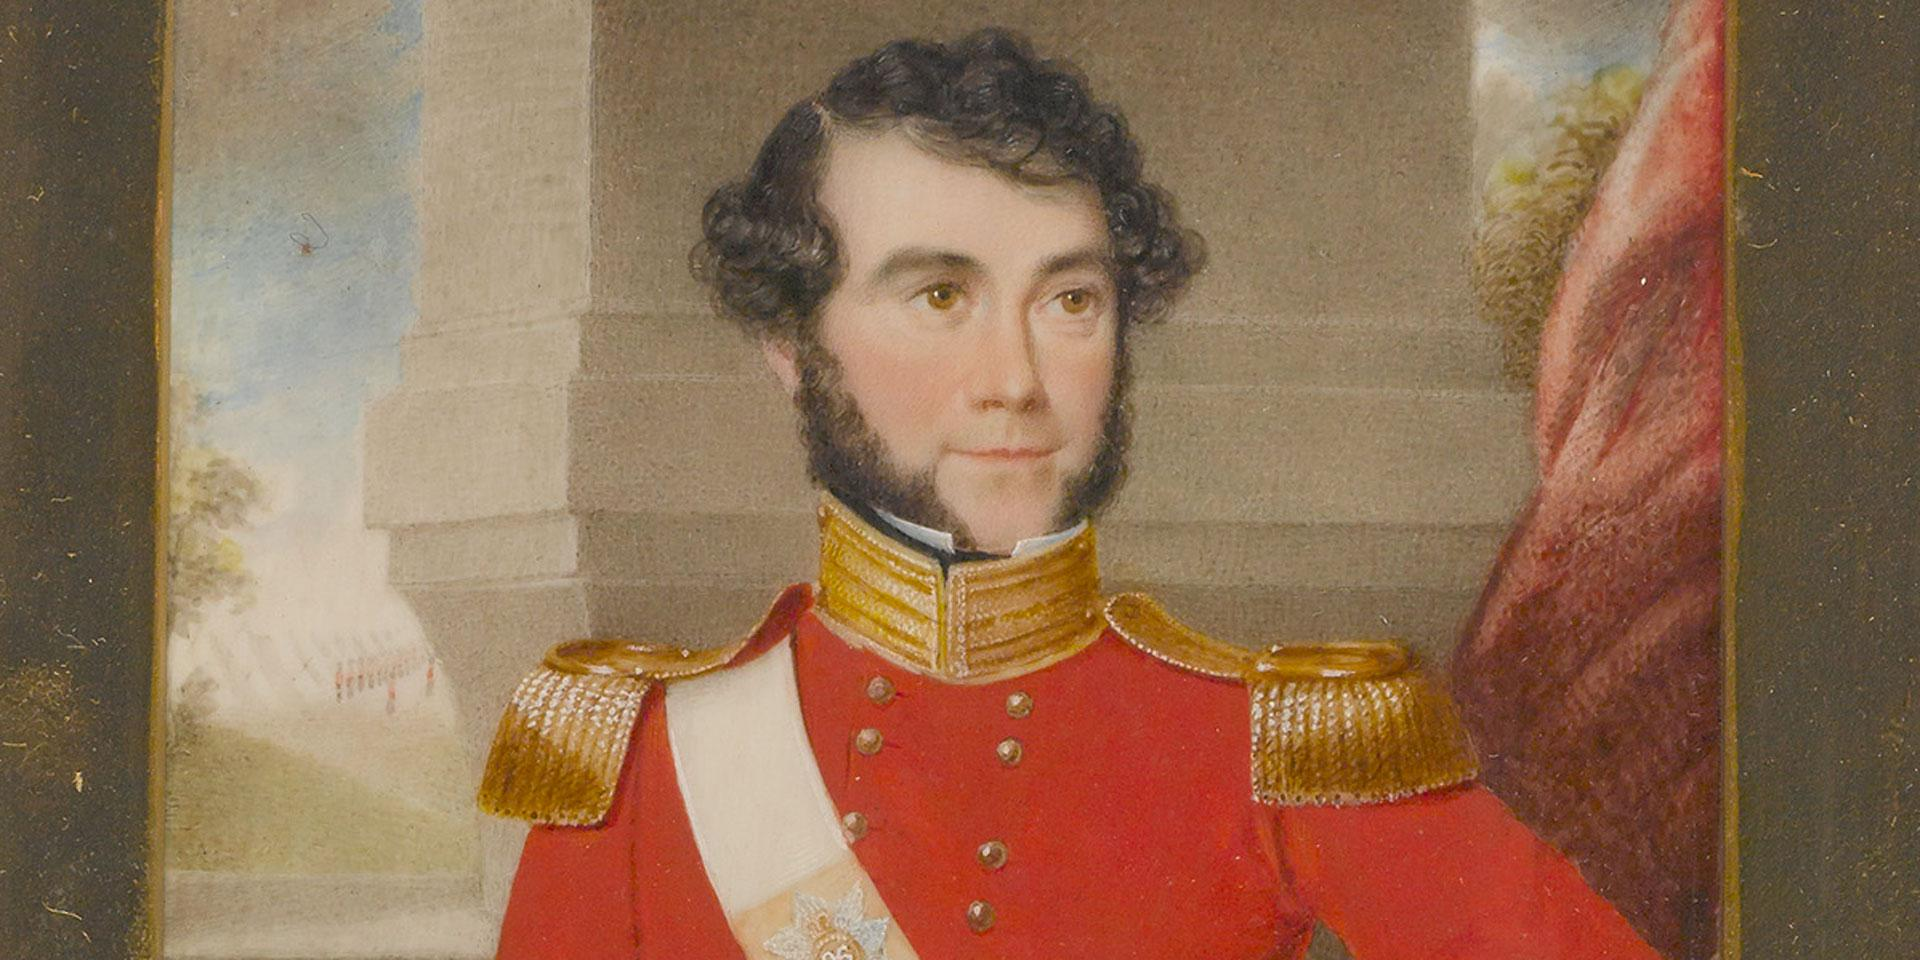 Captain Abbott of the 96th Regiment of Foot, August 1836